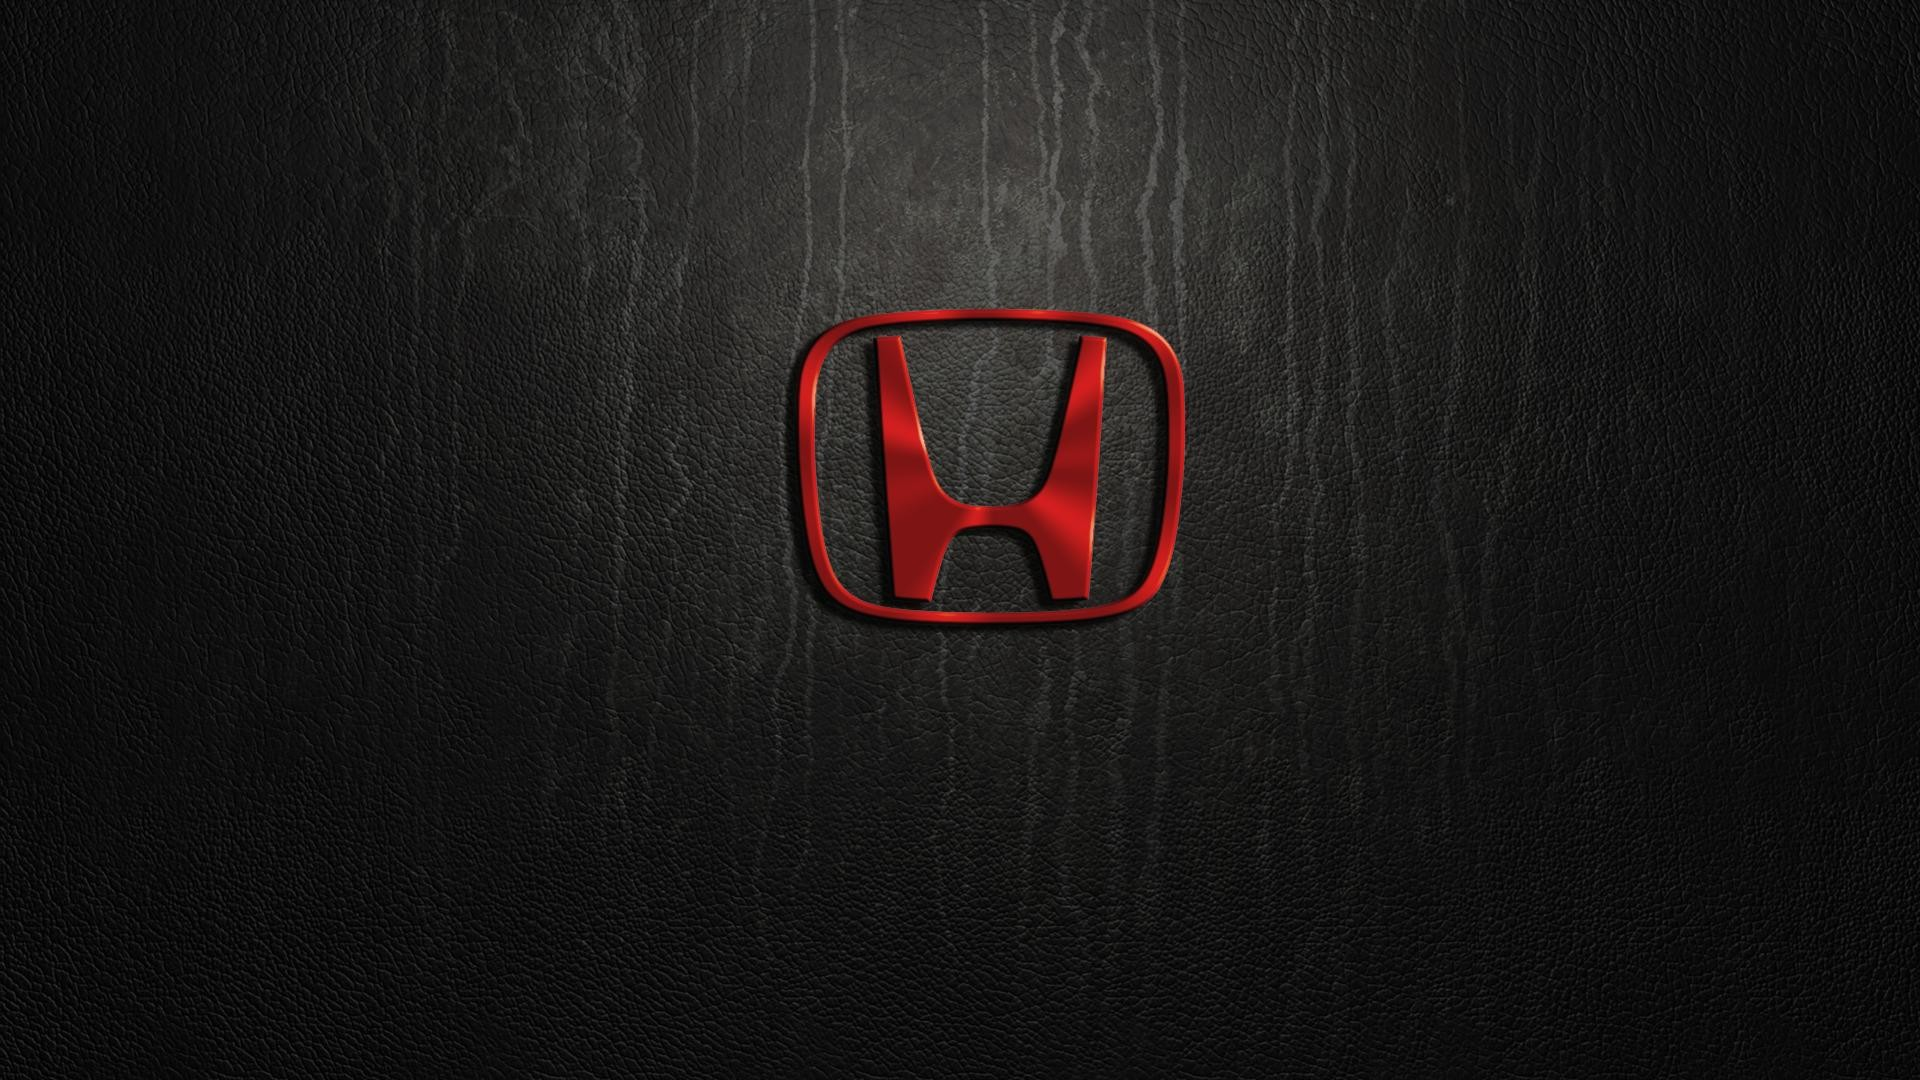 Honda Wallpaper Logo Cars Wallpapers HD – Wallpapers HD